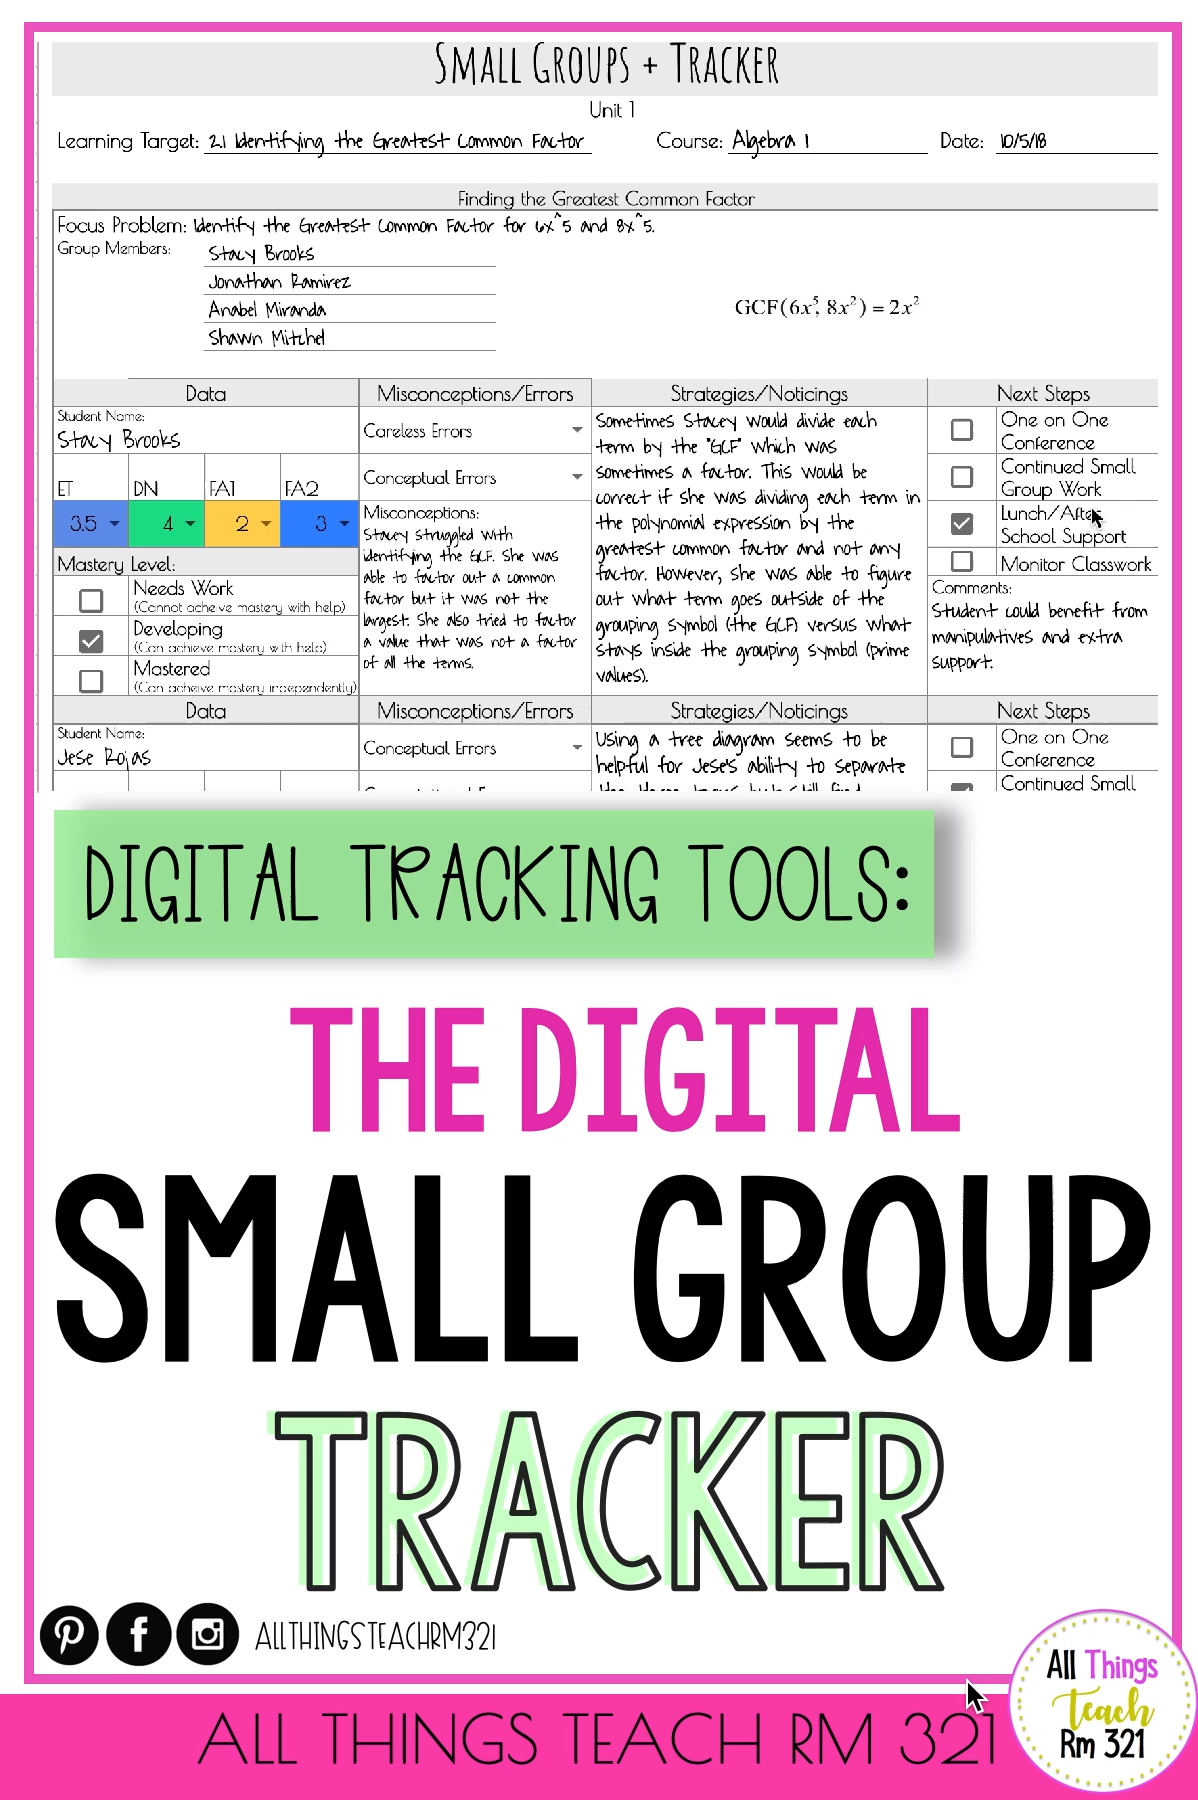 This product is a DIGITAL Small Group Tracker that can be used for ALL your small group conferencing needs! Not only is it digital, but it can be used for ANY class and ANY grade! It also supports up to 10 units and 20 lessons per unit. So you don't have to make copies every time you run out.